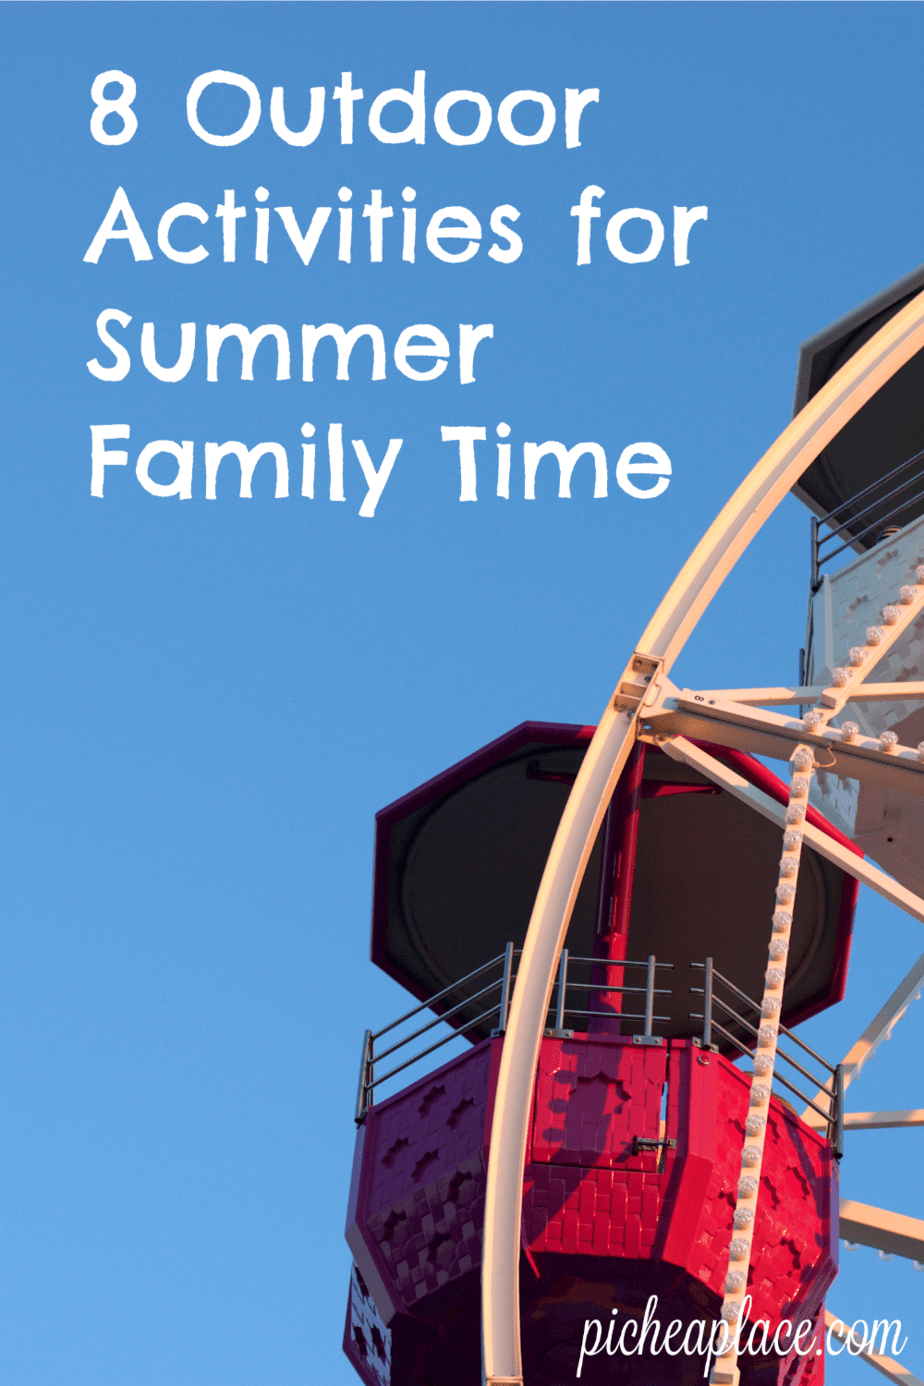 With the end of school comes summer break and time for busy families to spend quality time together. Even if your family cannot take an extended trip together, there are still many outdoor activities you can enjoy together as a family this summer. | 8 Outdoor Activities for Summer Family Time